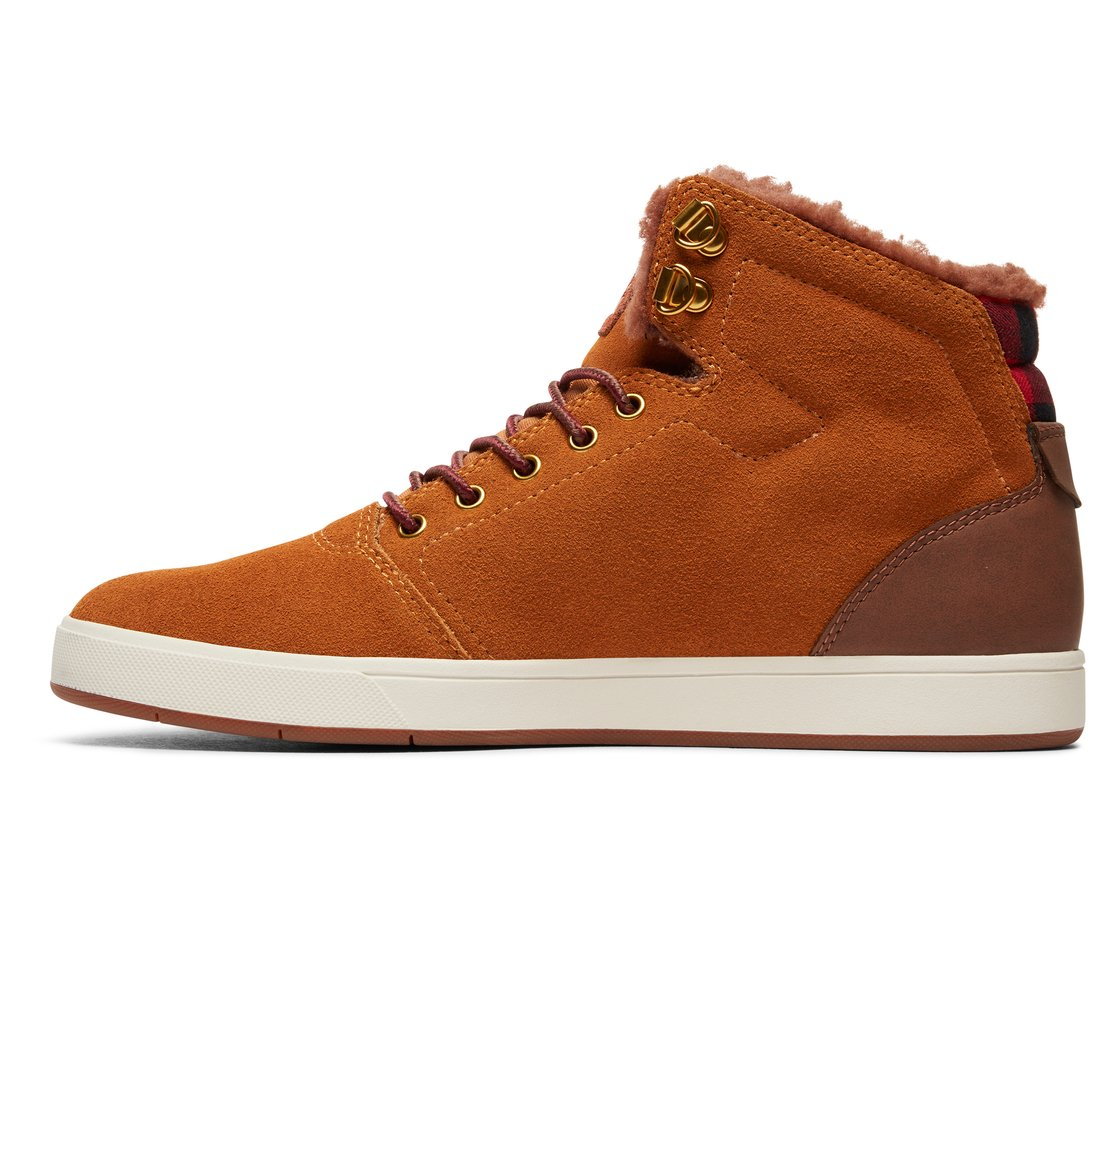 DC Shoes Crisis High - High-Top Shoes - Chaussures montantes - Homme U8reLU8Znm